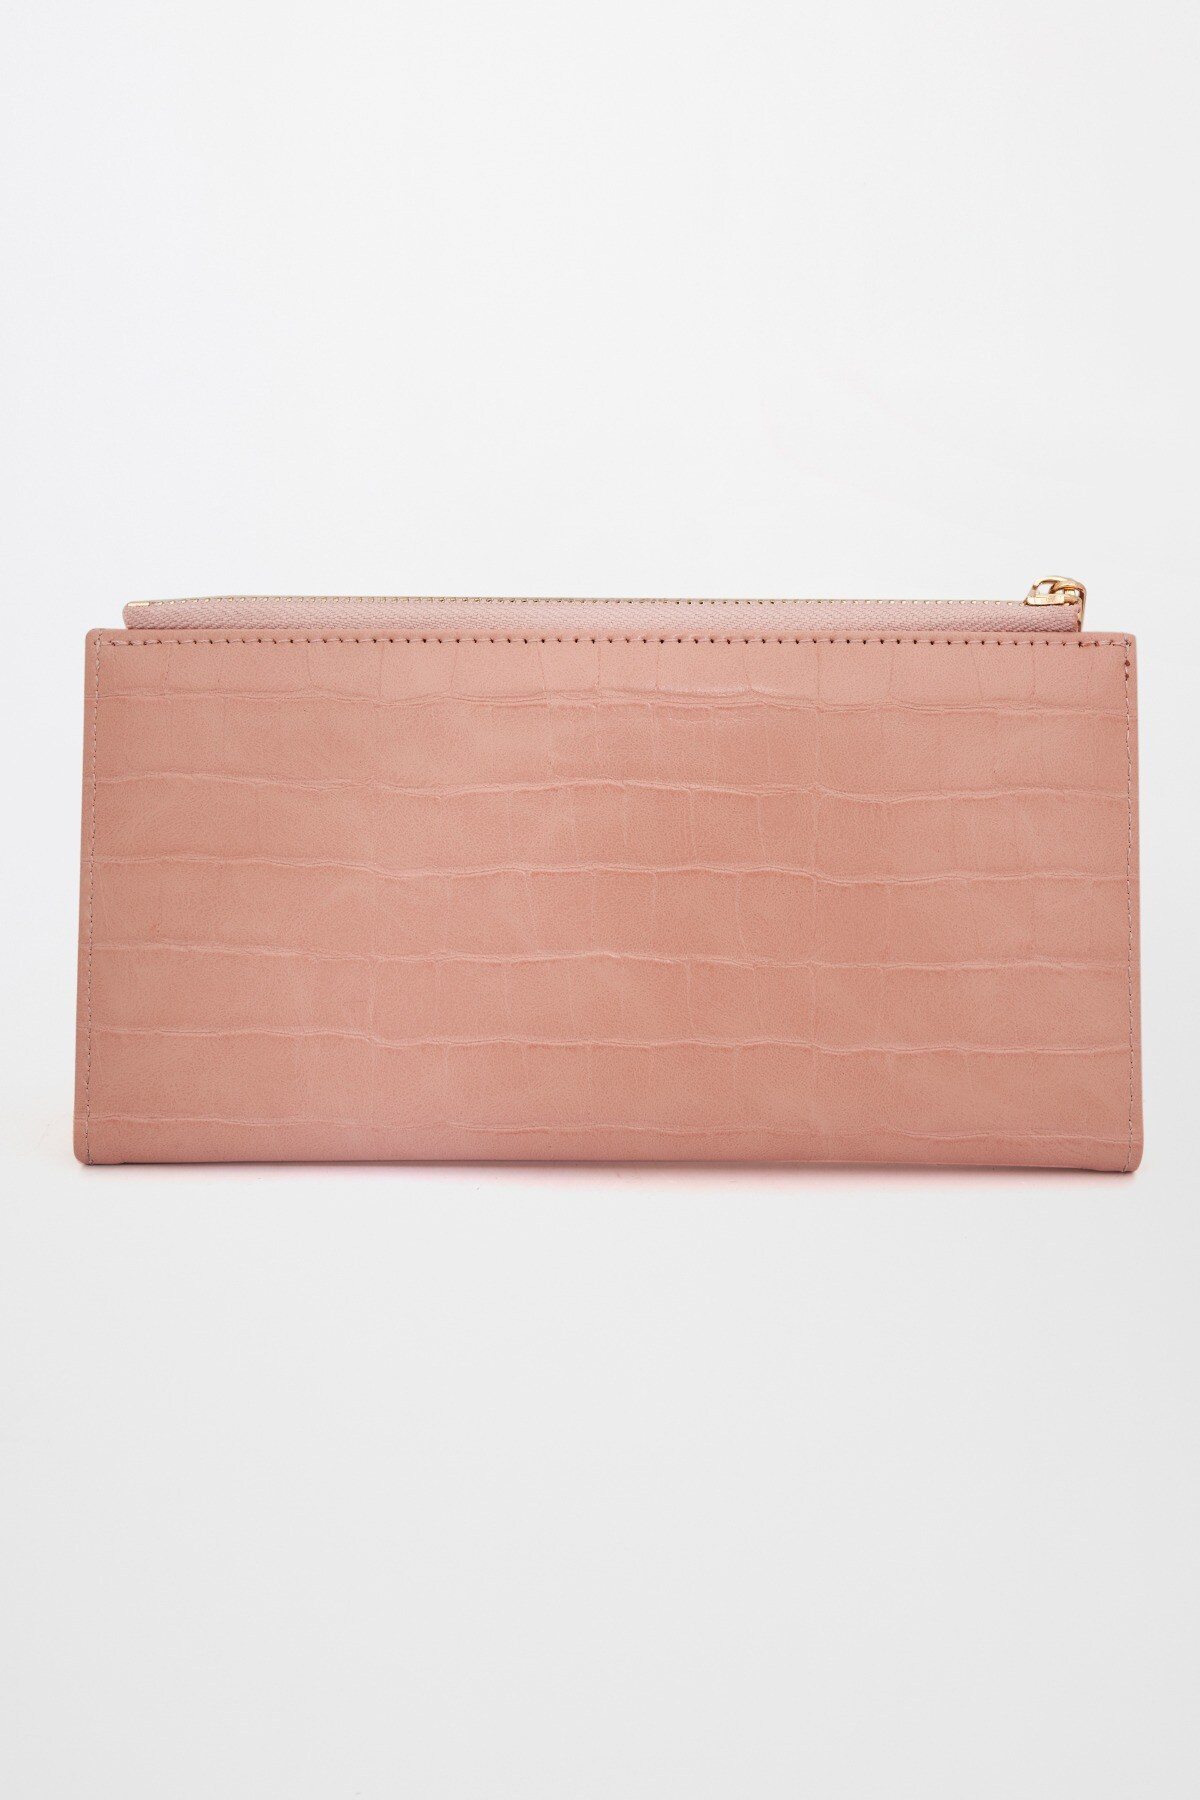 AND   Pink Wallet